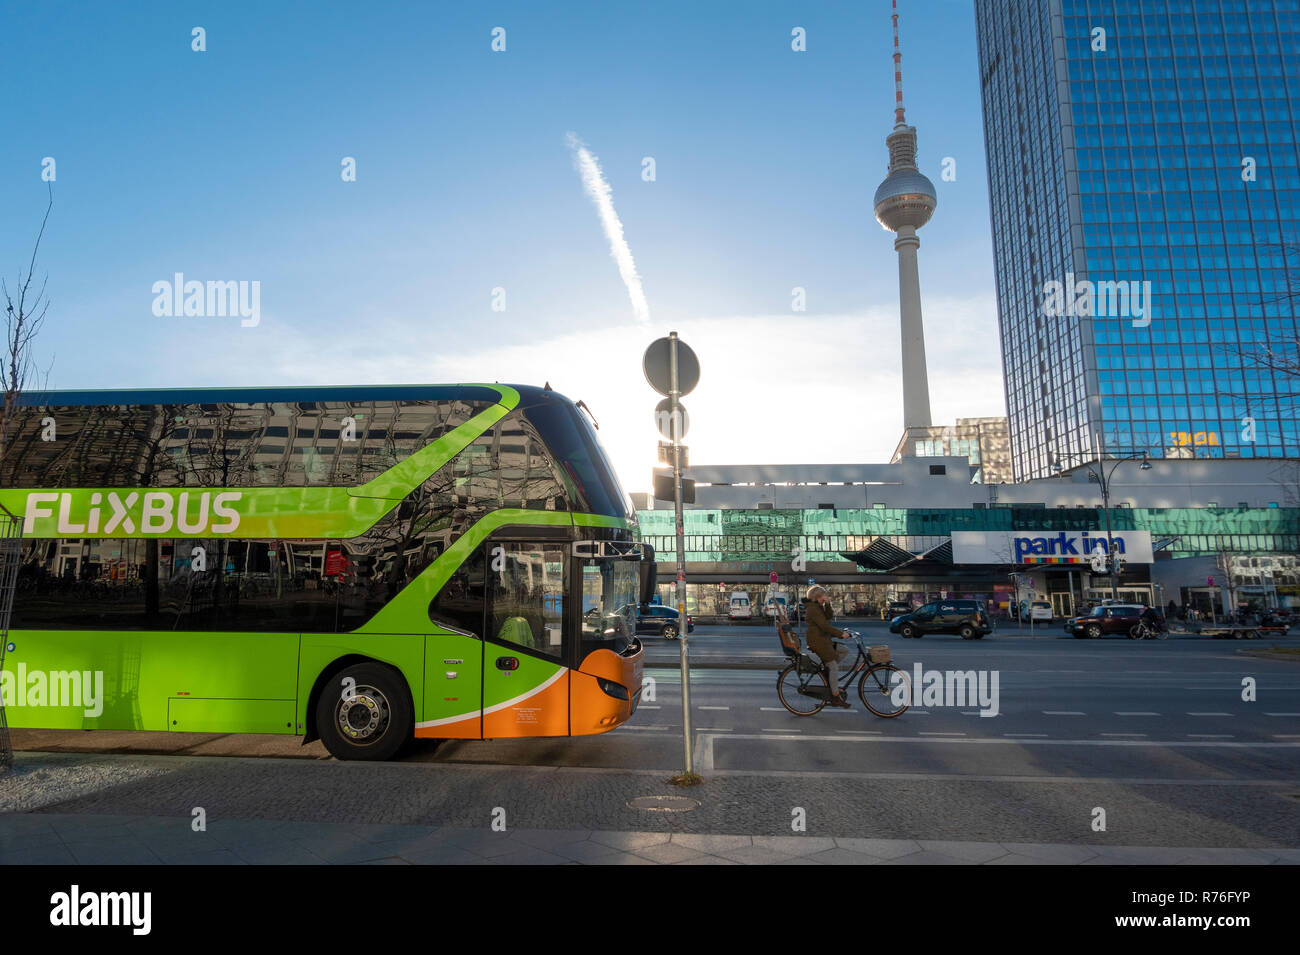 Flixbus long distance bus coach on Alexandersrasse Berlin with the Berlin Television Tower Berlin Fernsehturm Fernseh Tower on Alexanderplatz - Stock Image